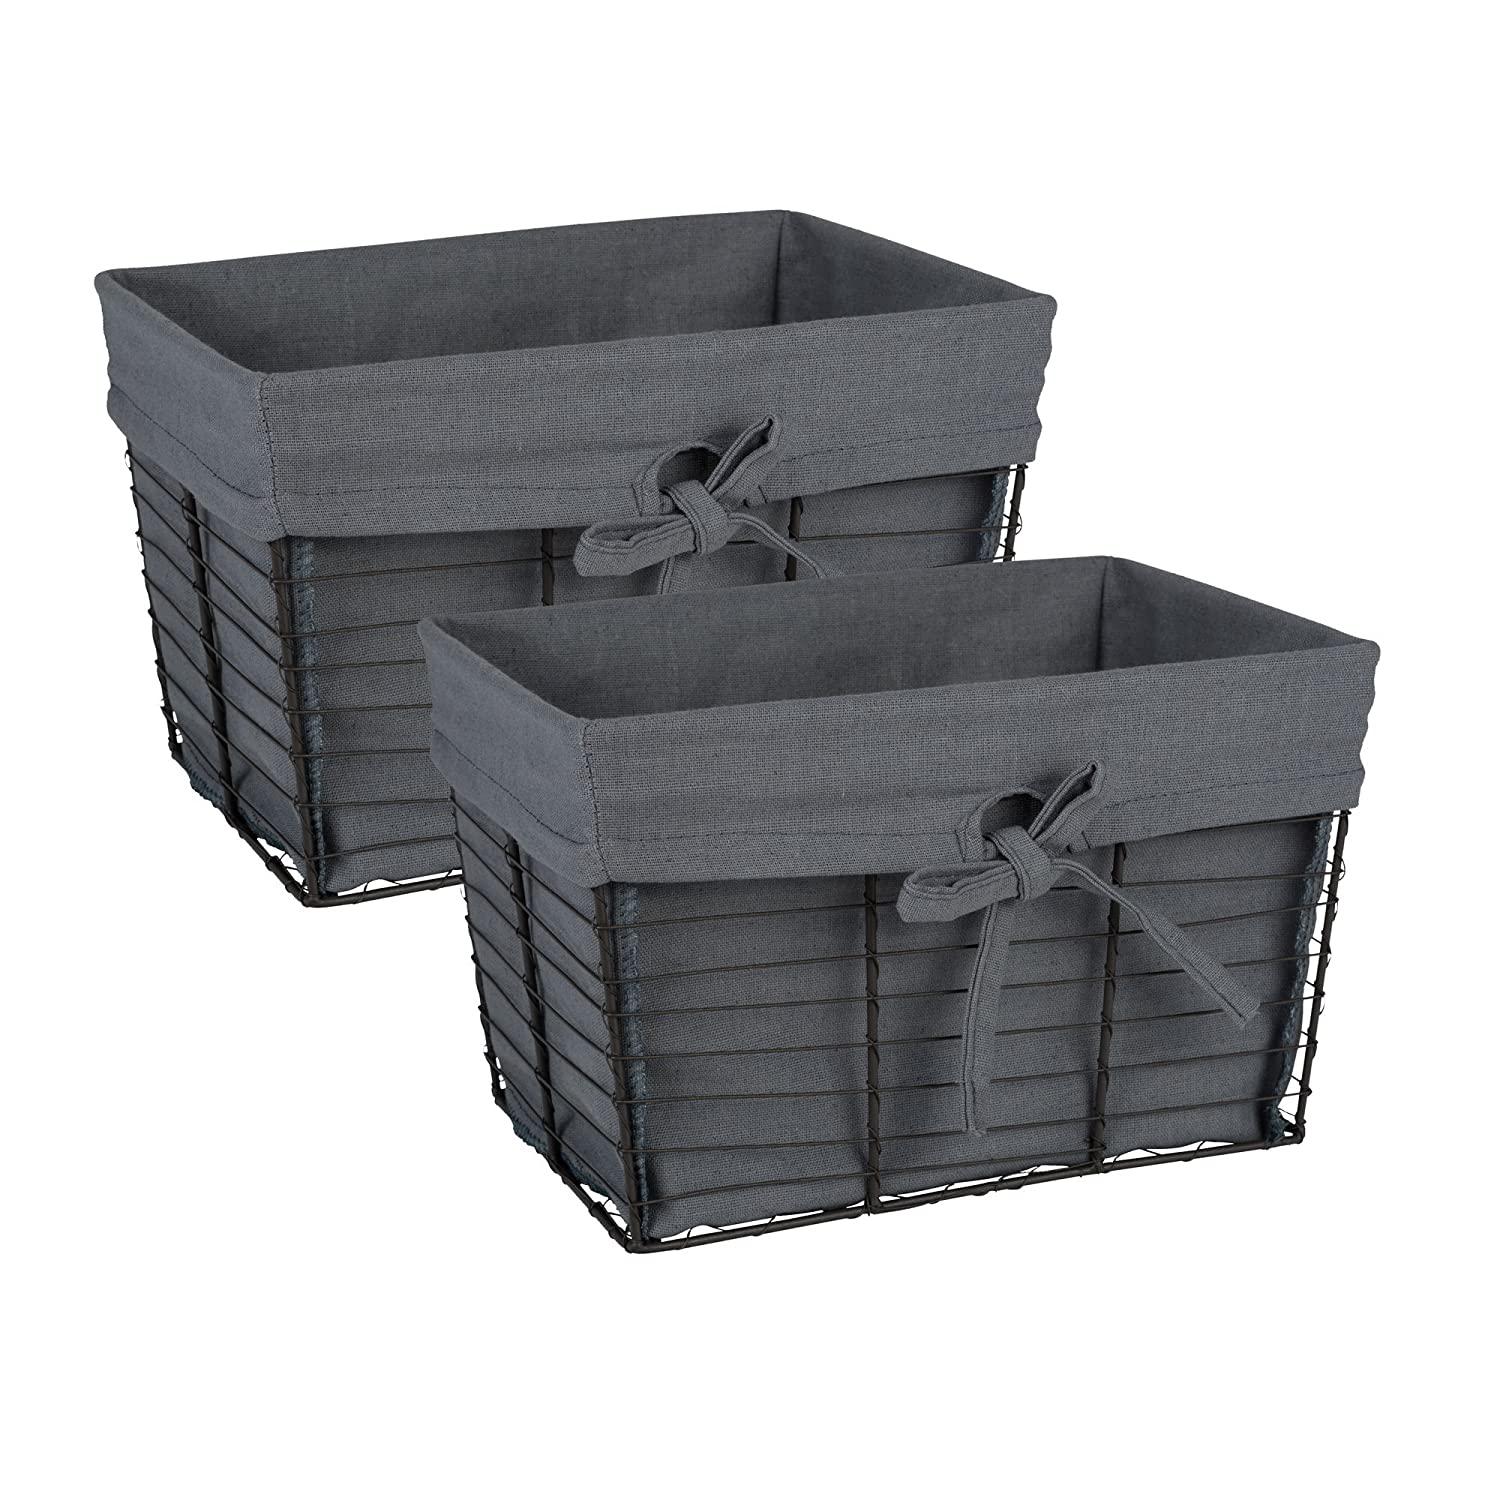 DII Vintage Grey Wire Basket Removable Fabric Liner, Set of 2, Gray